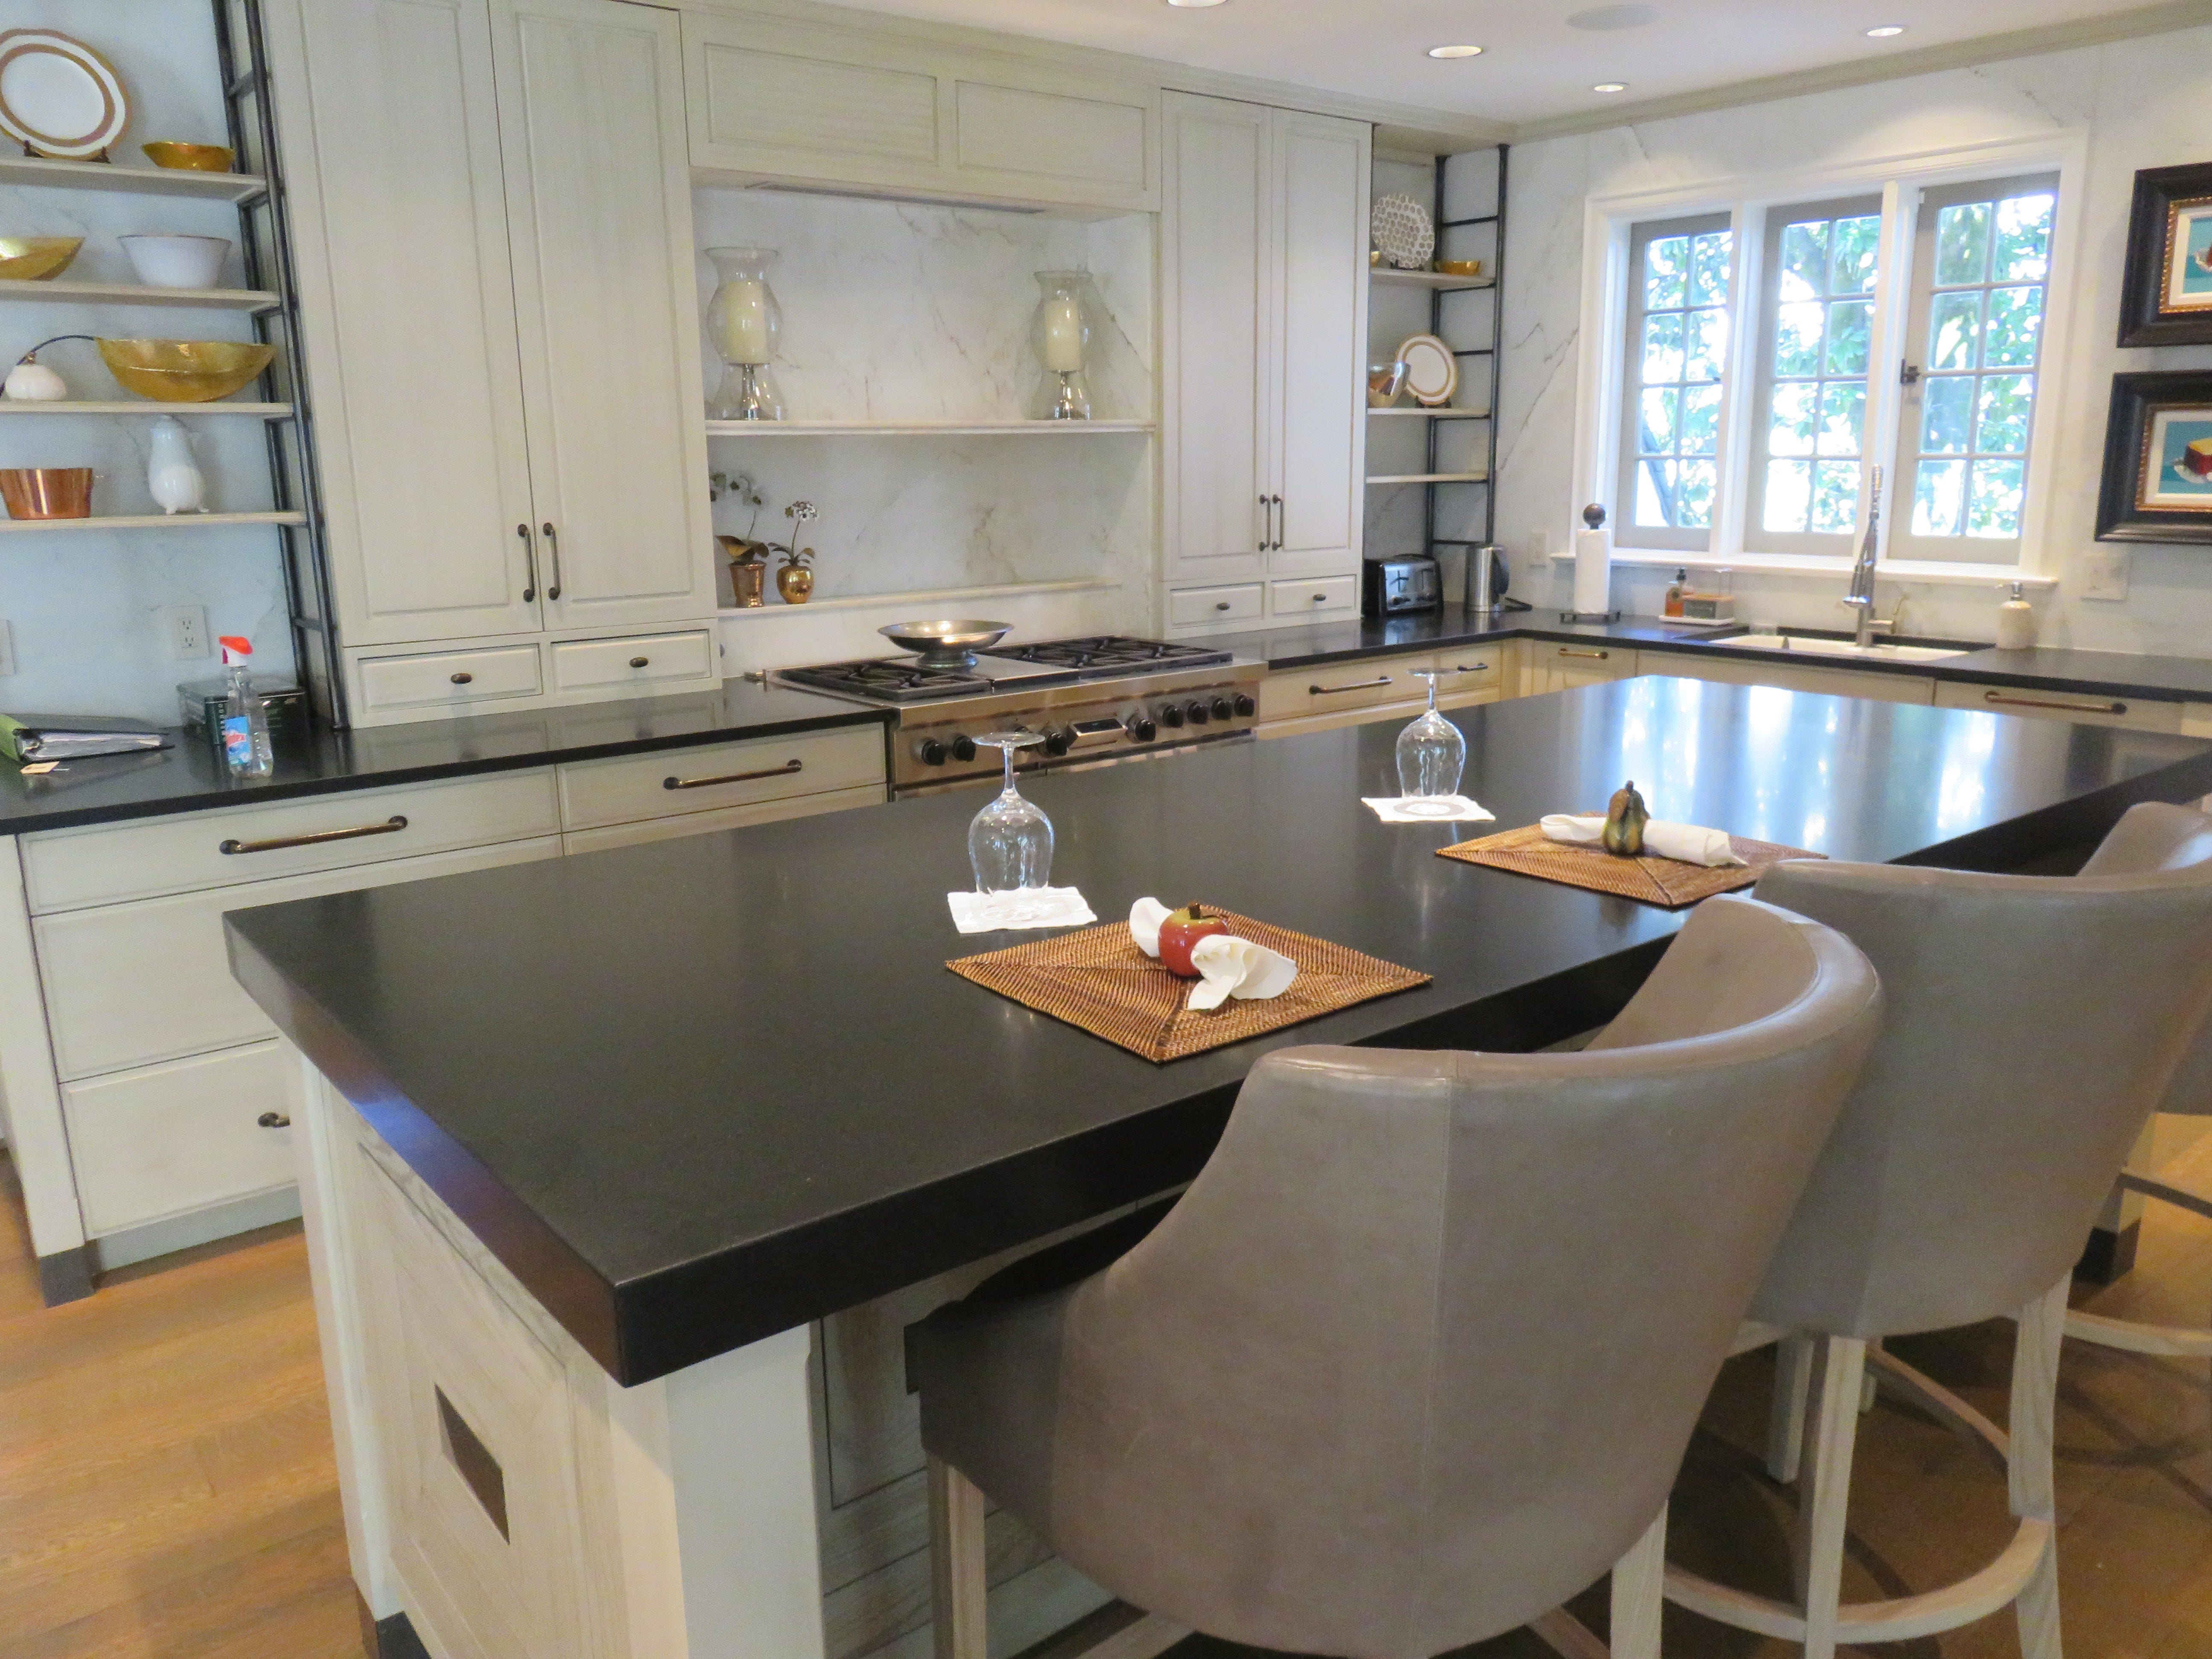 The kitchen of Magnolia Bluff was completely remodeled in recent years.